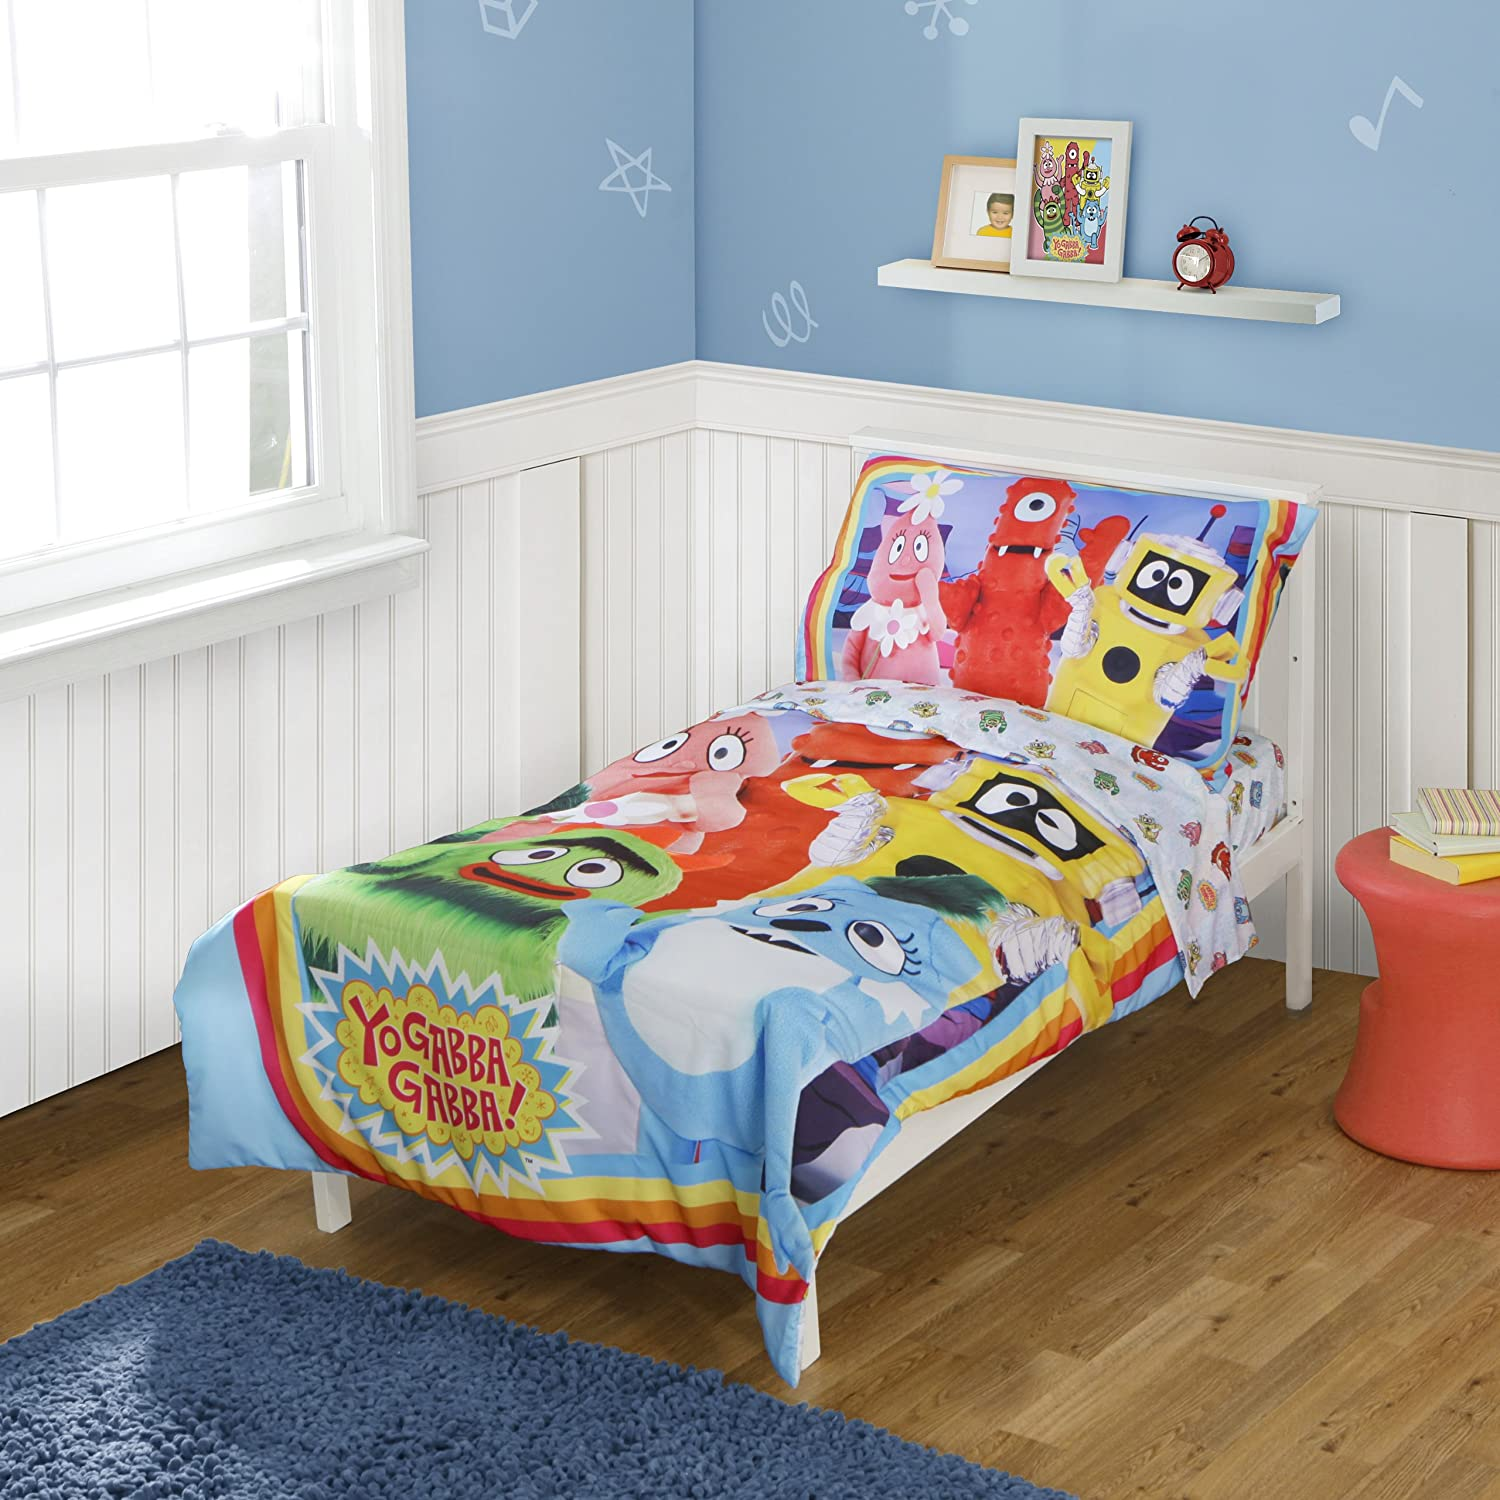 Amazoncom Yo Gabba Gabba Toddler Bedding Set Discontinued by